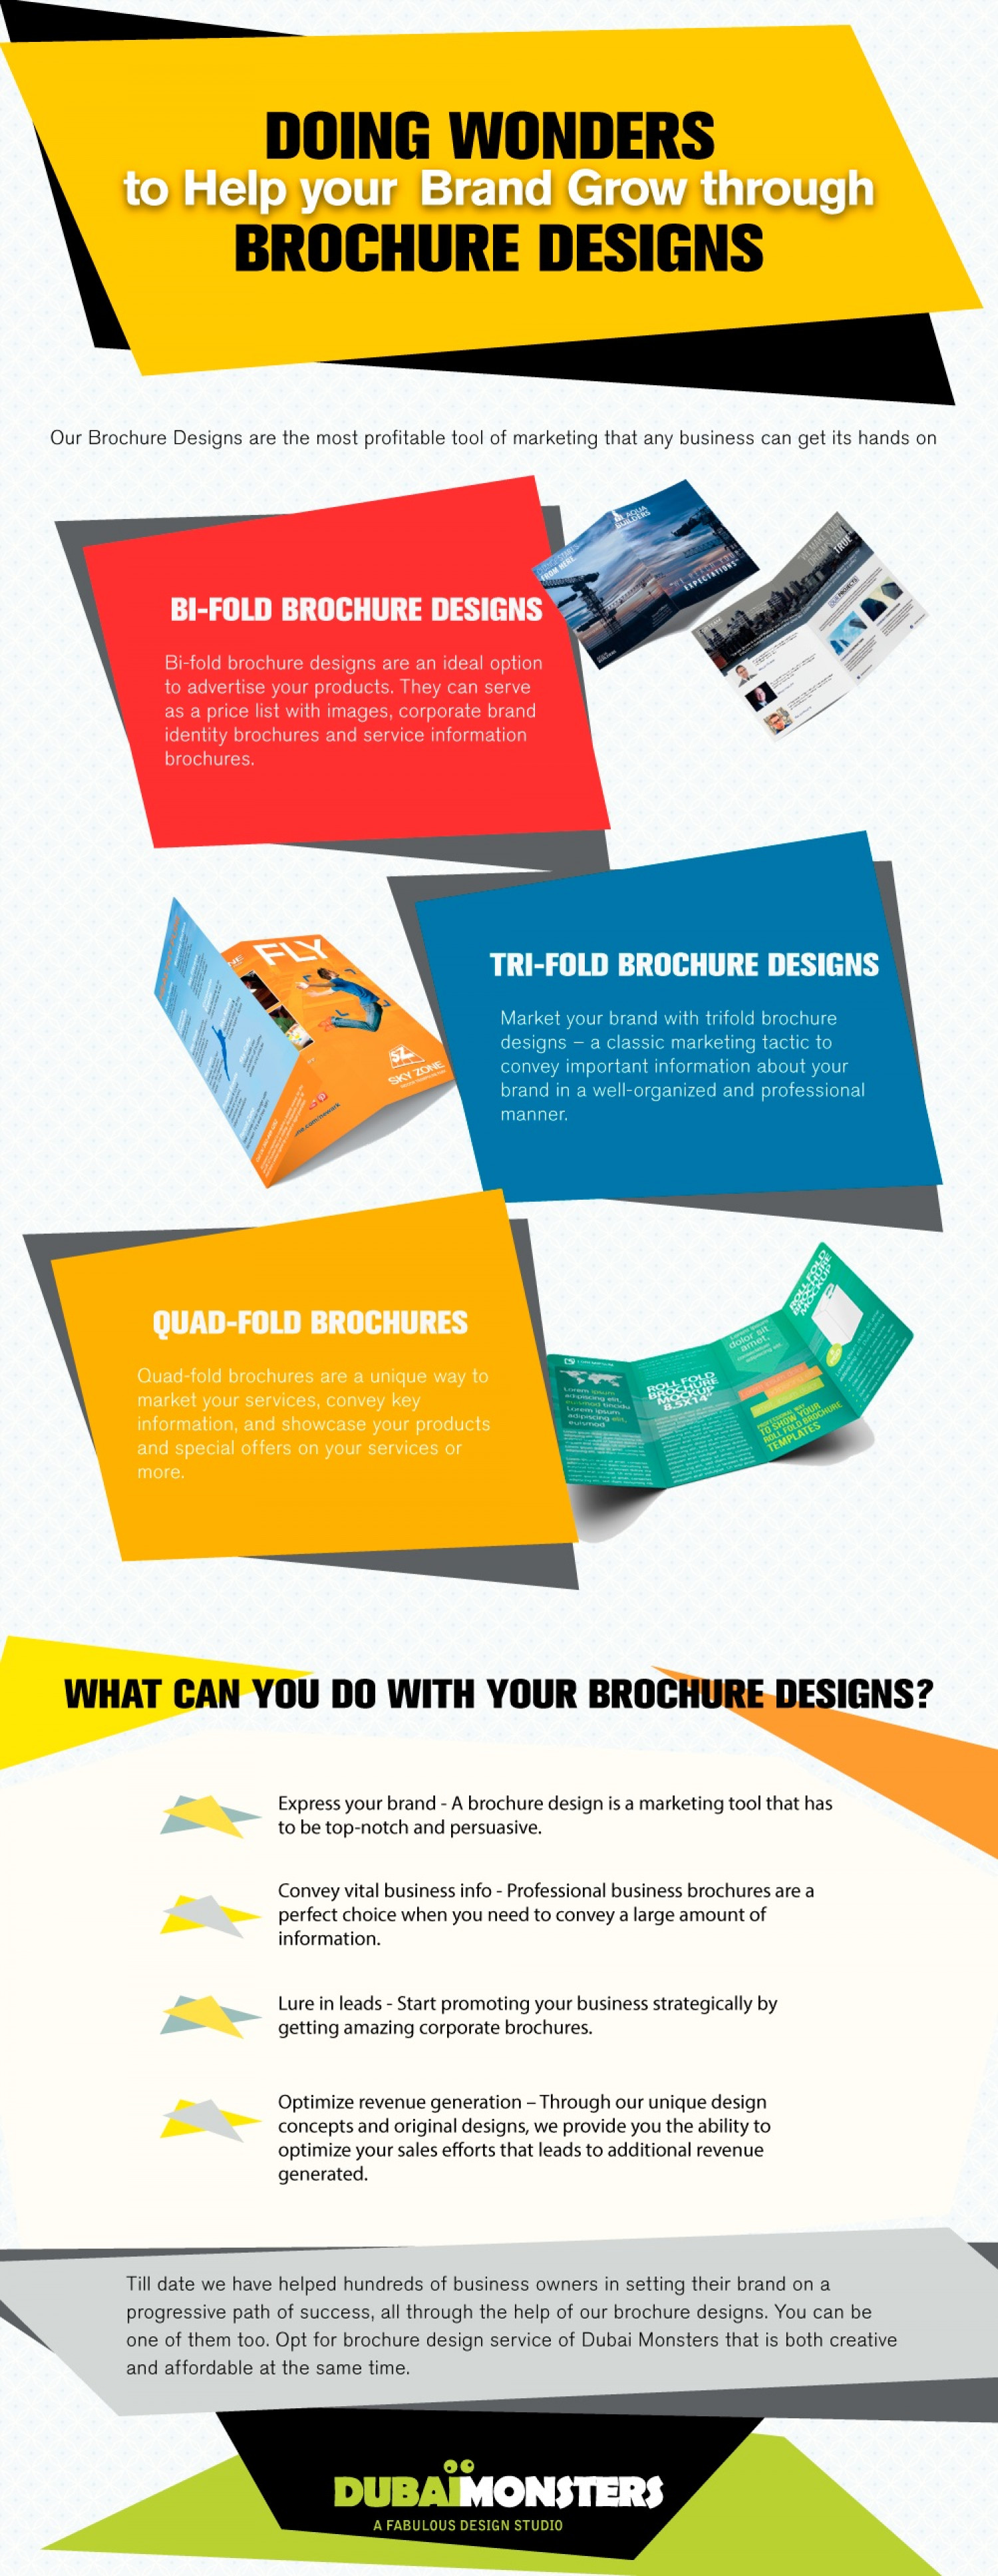 Doing Wonders to Help your Brand Grow through Brochure Designs   Infographic